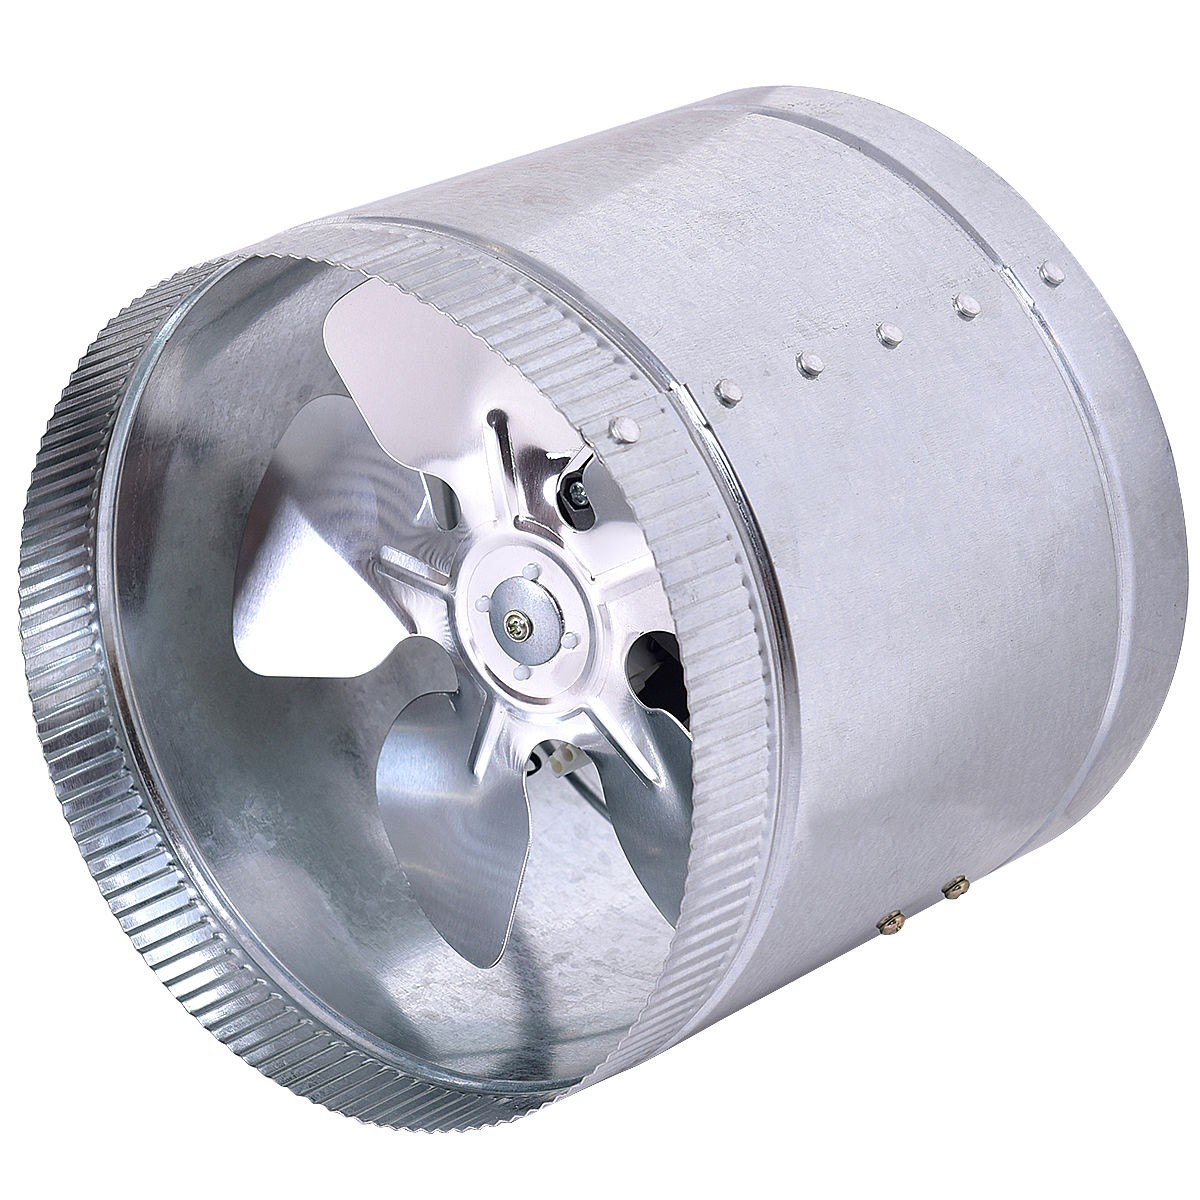 3 Sizes Inline Duct Booster Fan Blower Exhaust Ducting